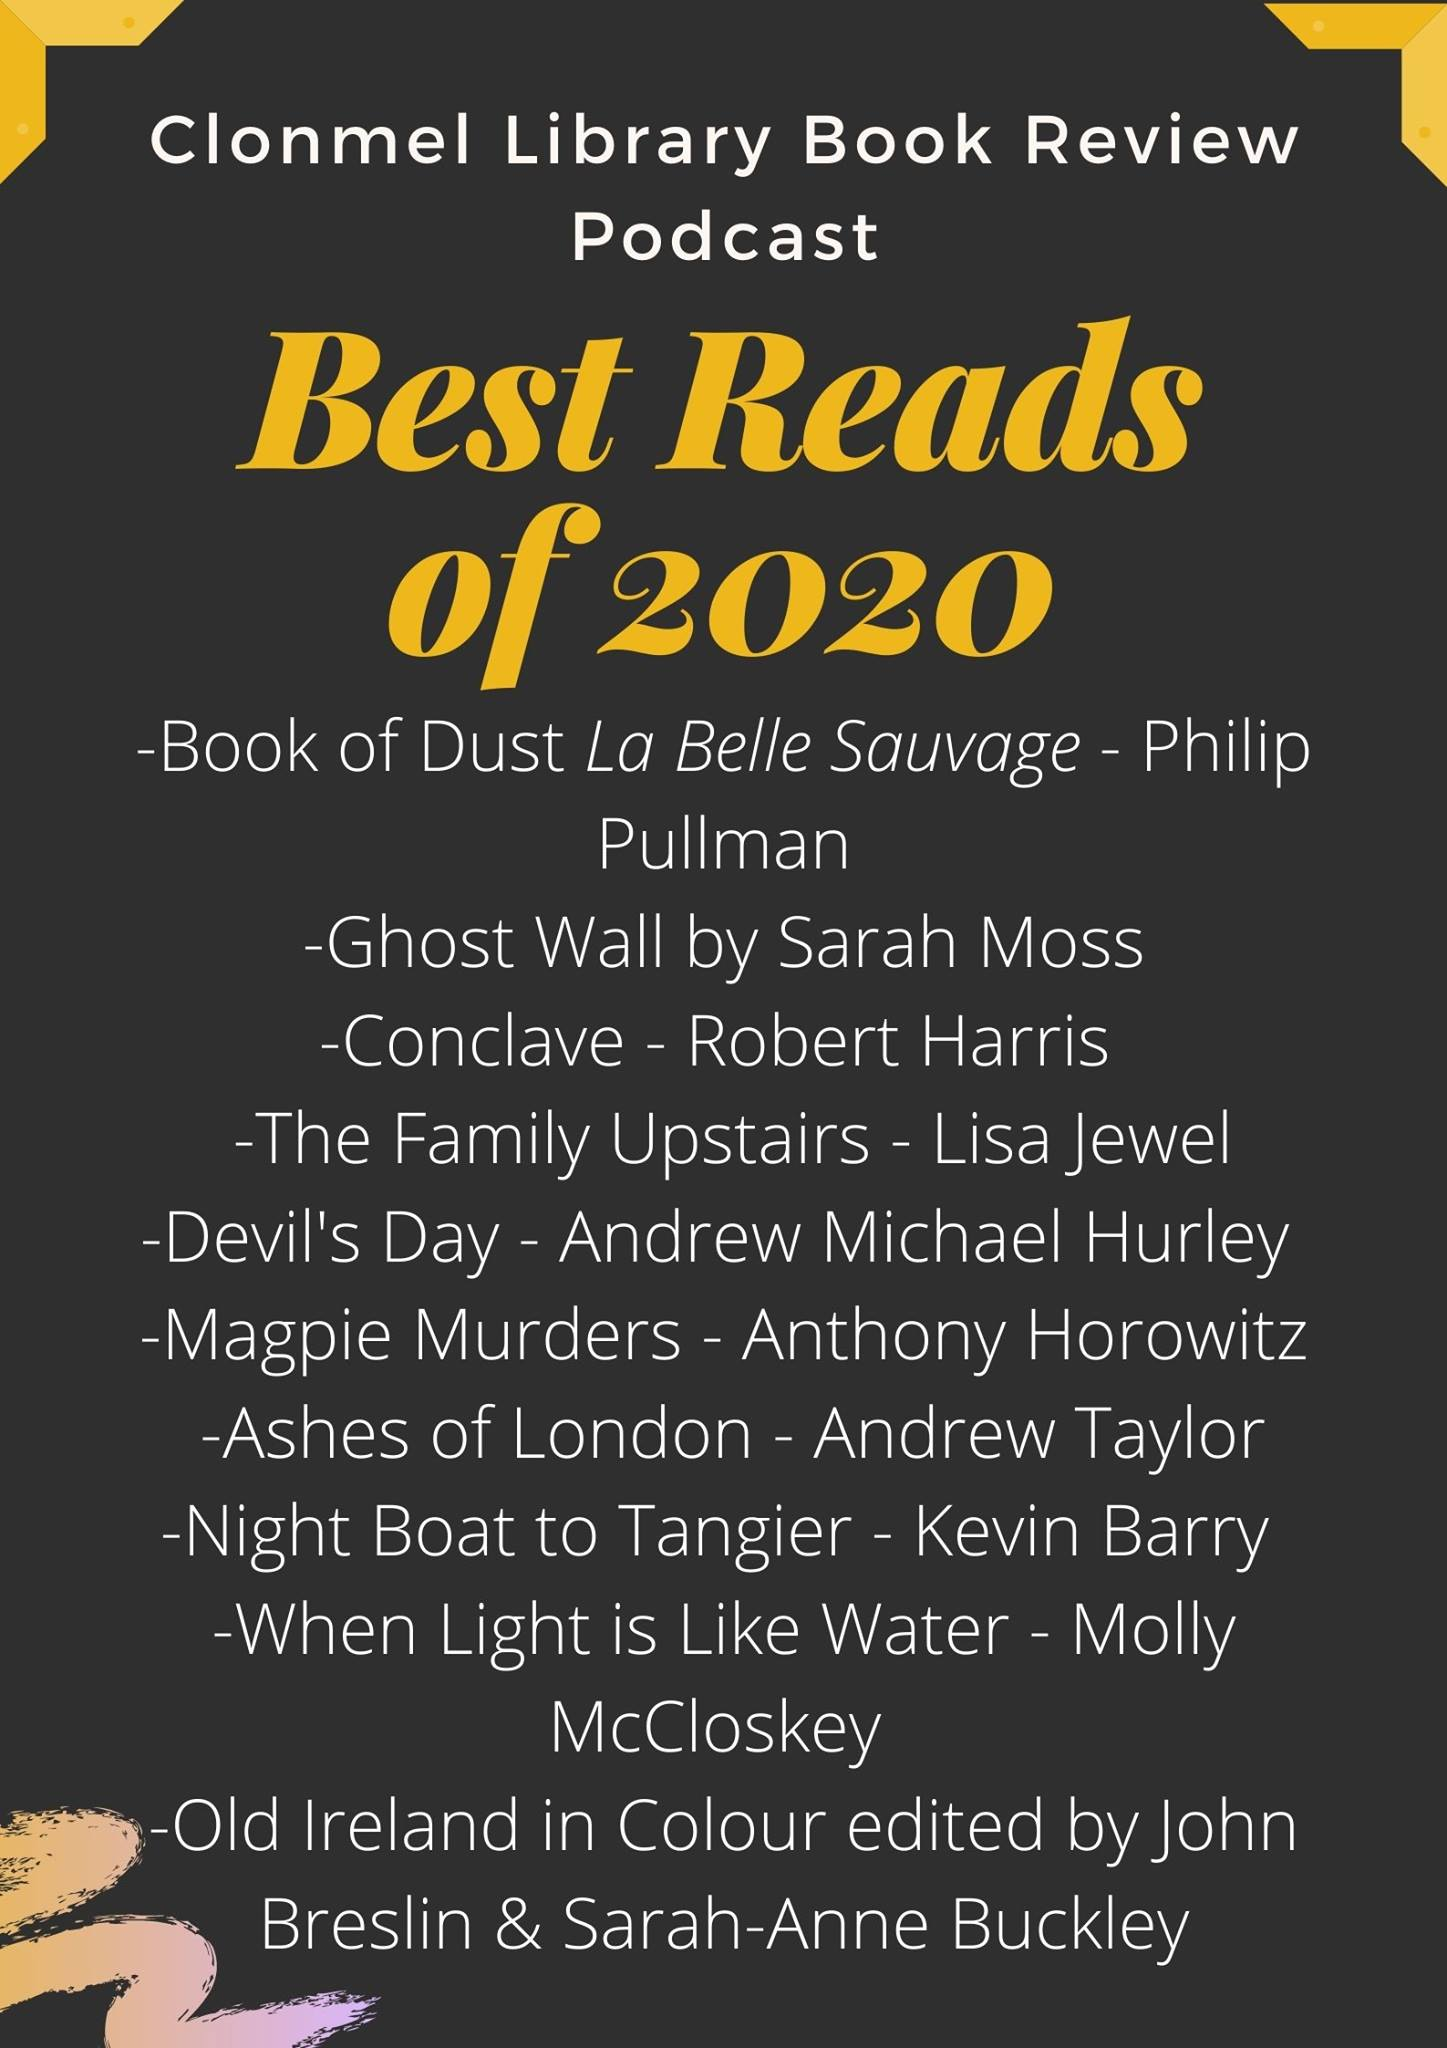 The Book Review Podcast: Top 10 Reads of 2020 (Part 1)